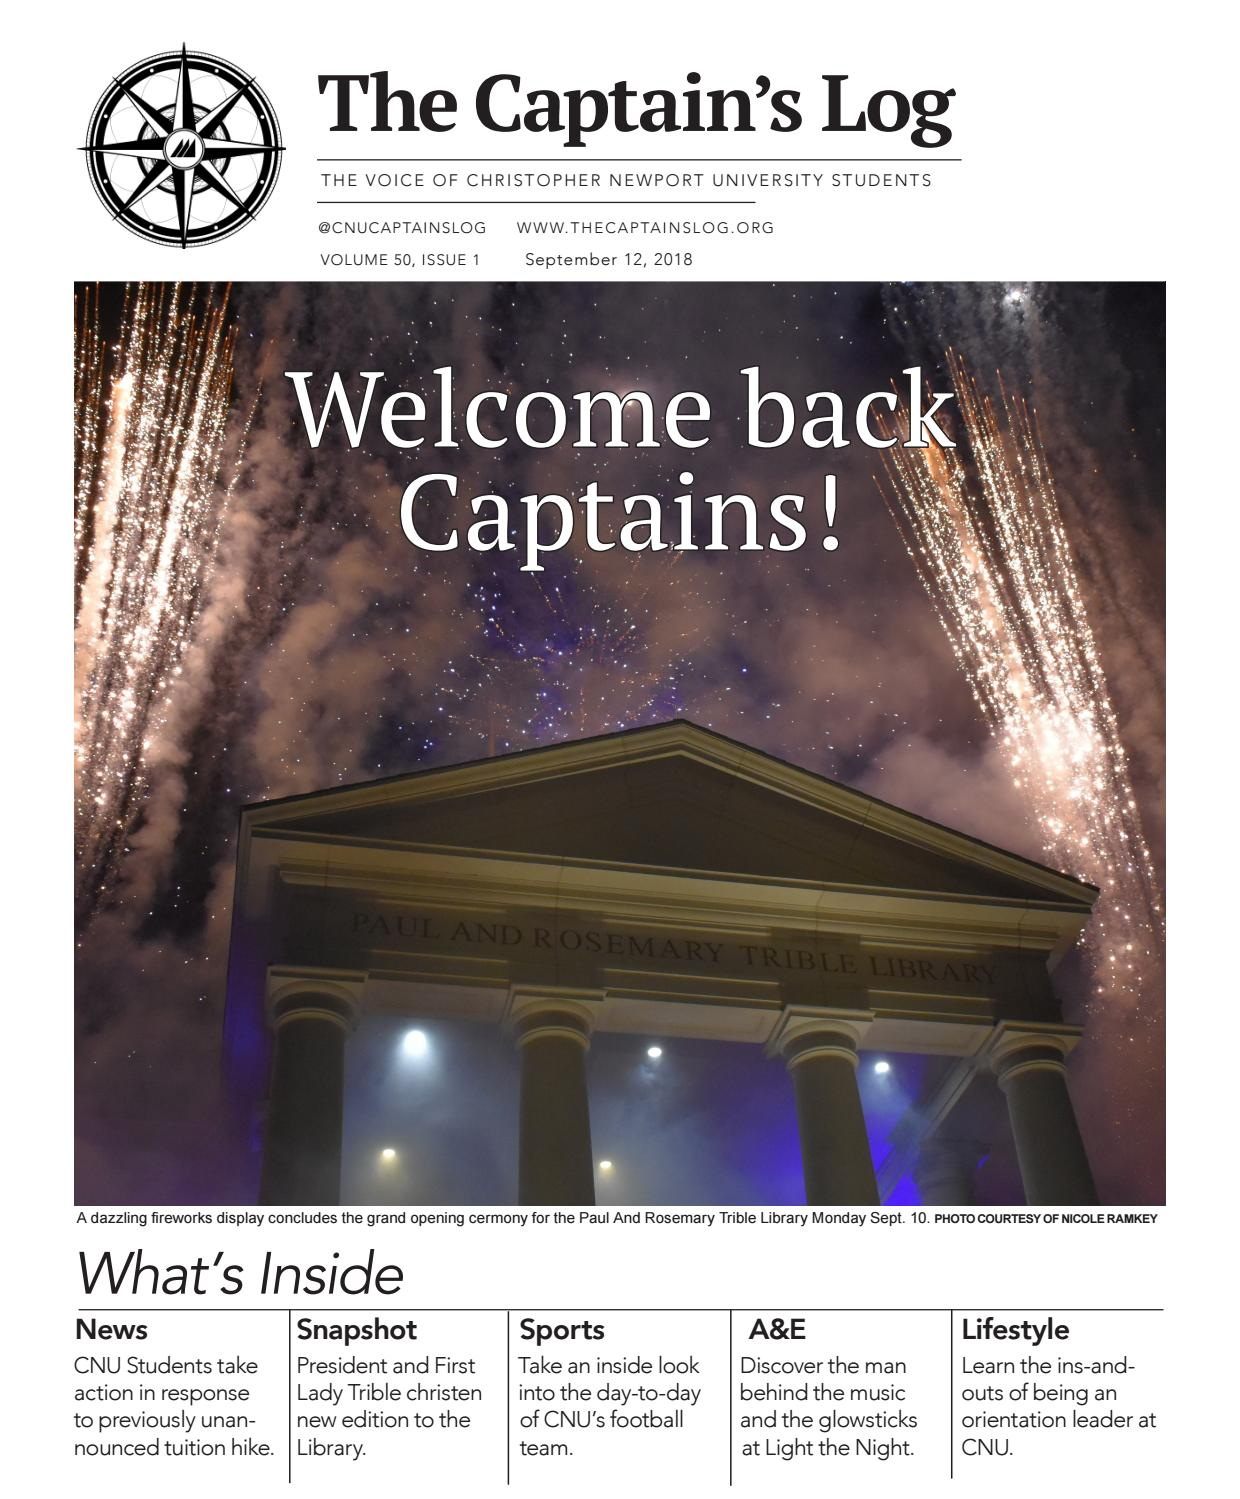 The Captain's Log: Volume 50, Issue 1 by The Captain's Log - issuu